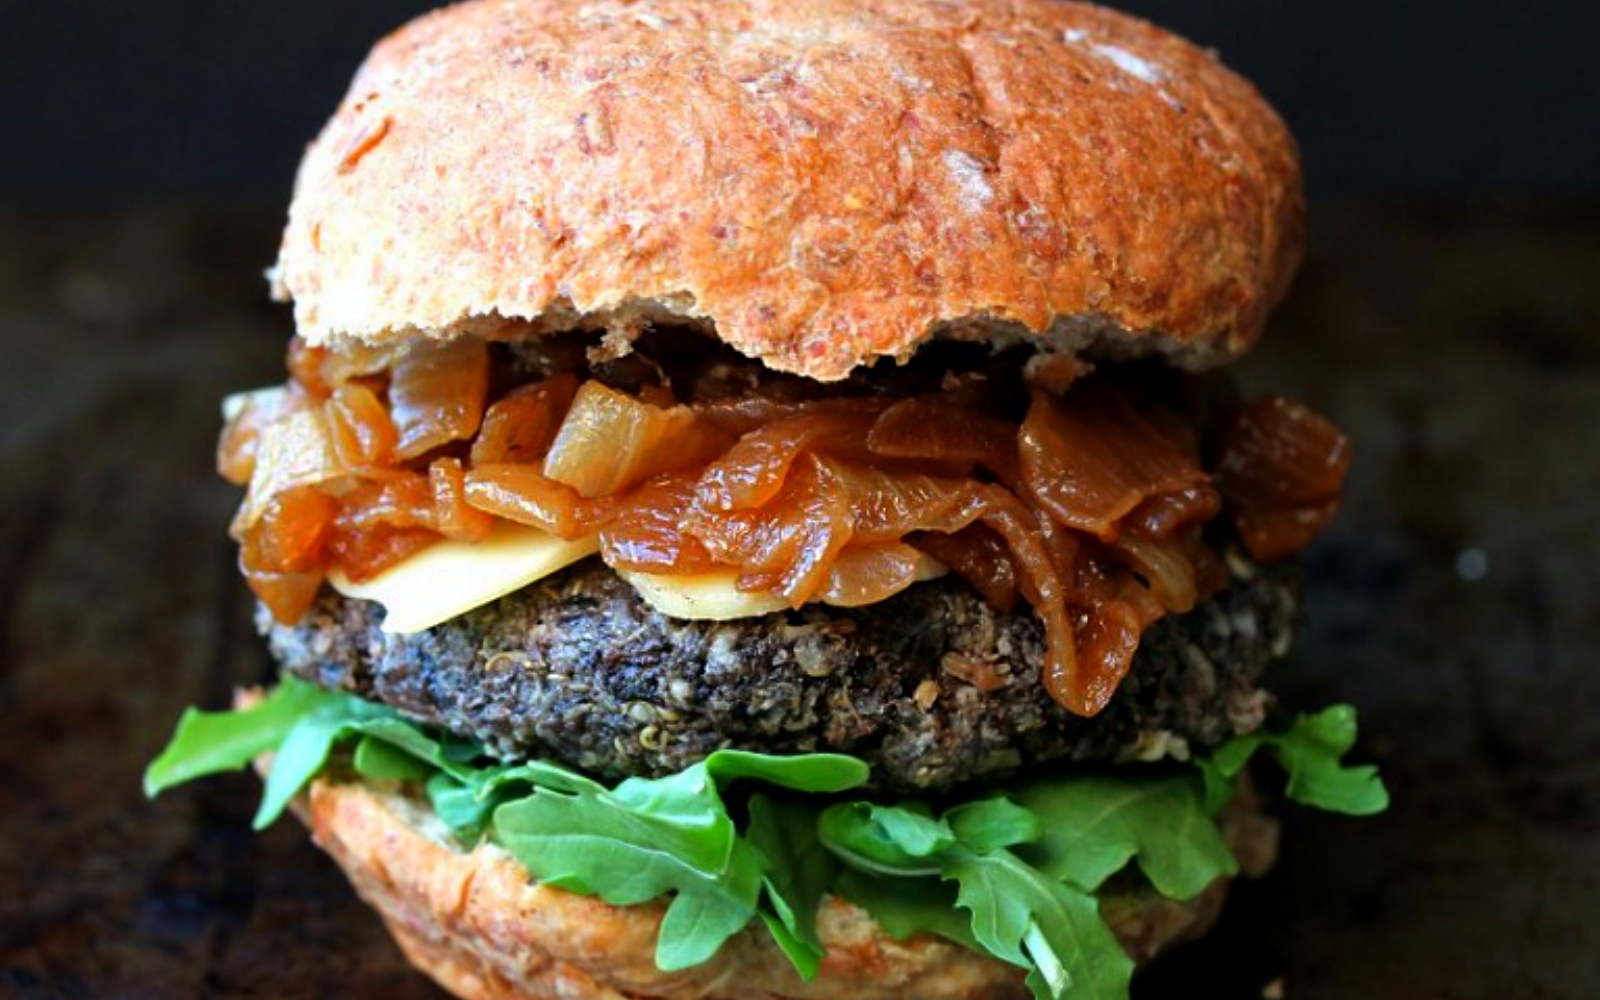 Pan-Seared Mushroom Burgers With Caramelized Onions and Arugula